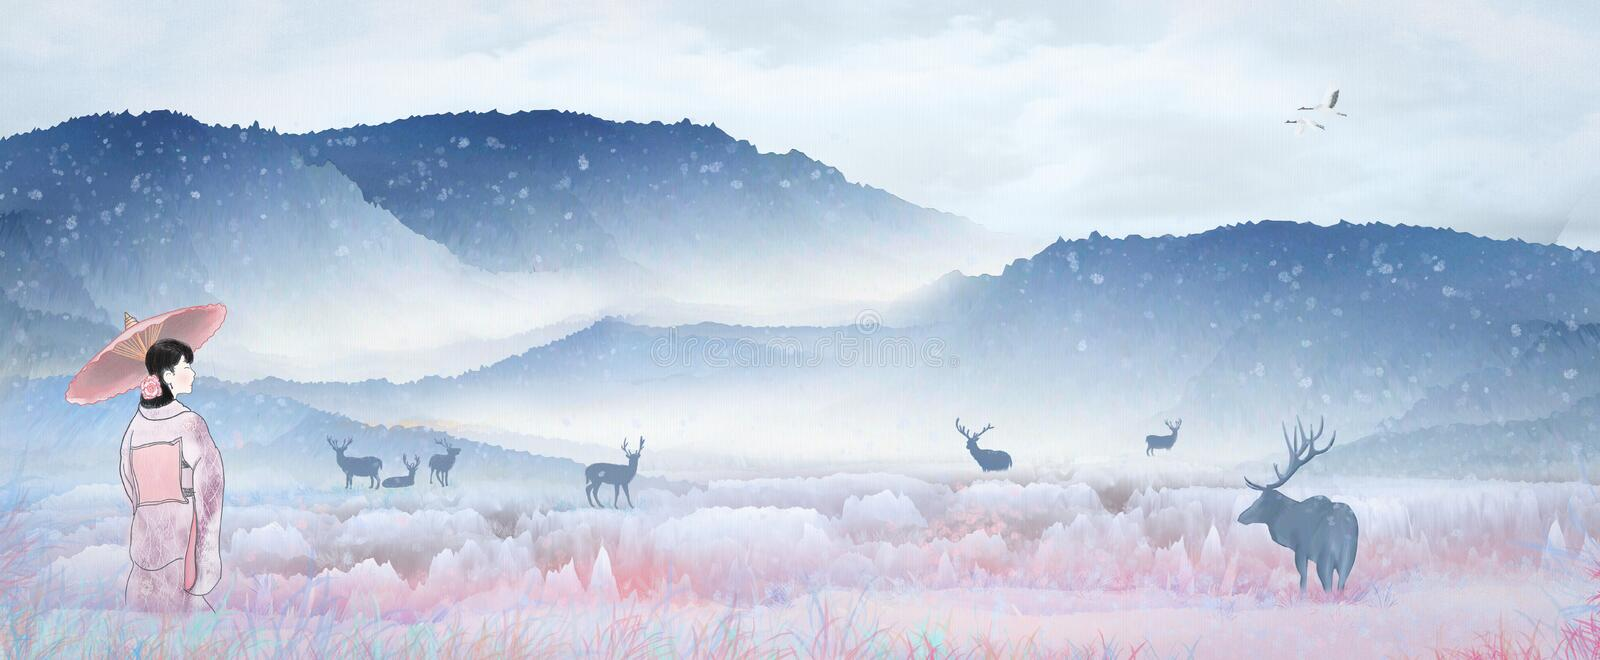 Illustration Japanese kimono girl playing in the fairyland scenery, snow sika deer resting at the lake to drink water stock illustration